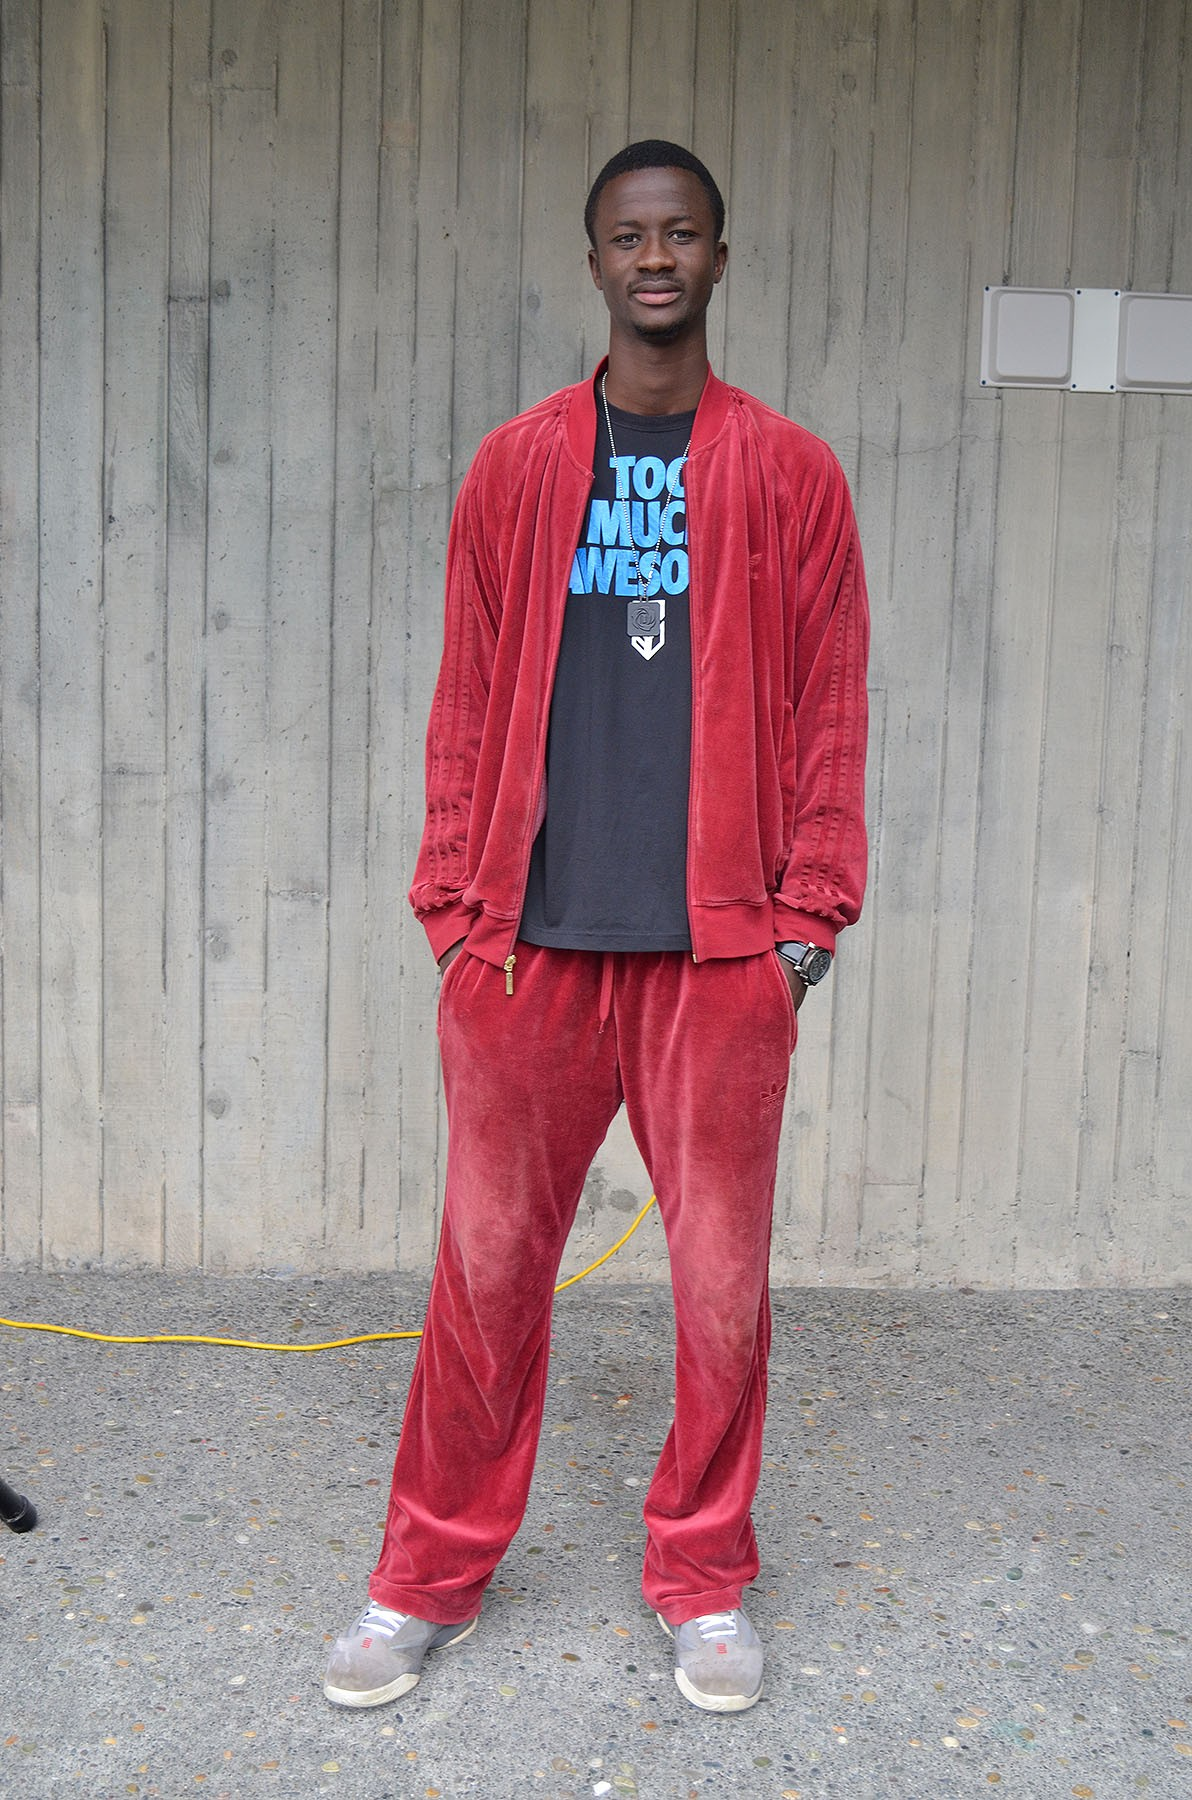 Moussa Sy, a freshman environmental engineering student is enjoying the cool climate here, a change from his home country of Mali. He's old-school in a velour tracksuit and Adidas. - PHOTO BY SHARON RUCHTE